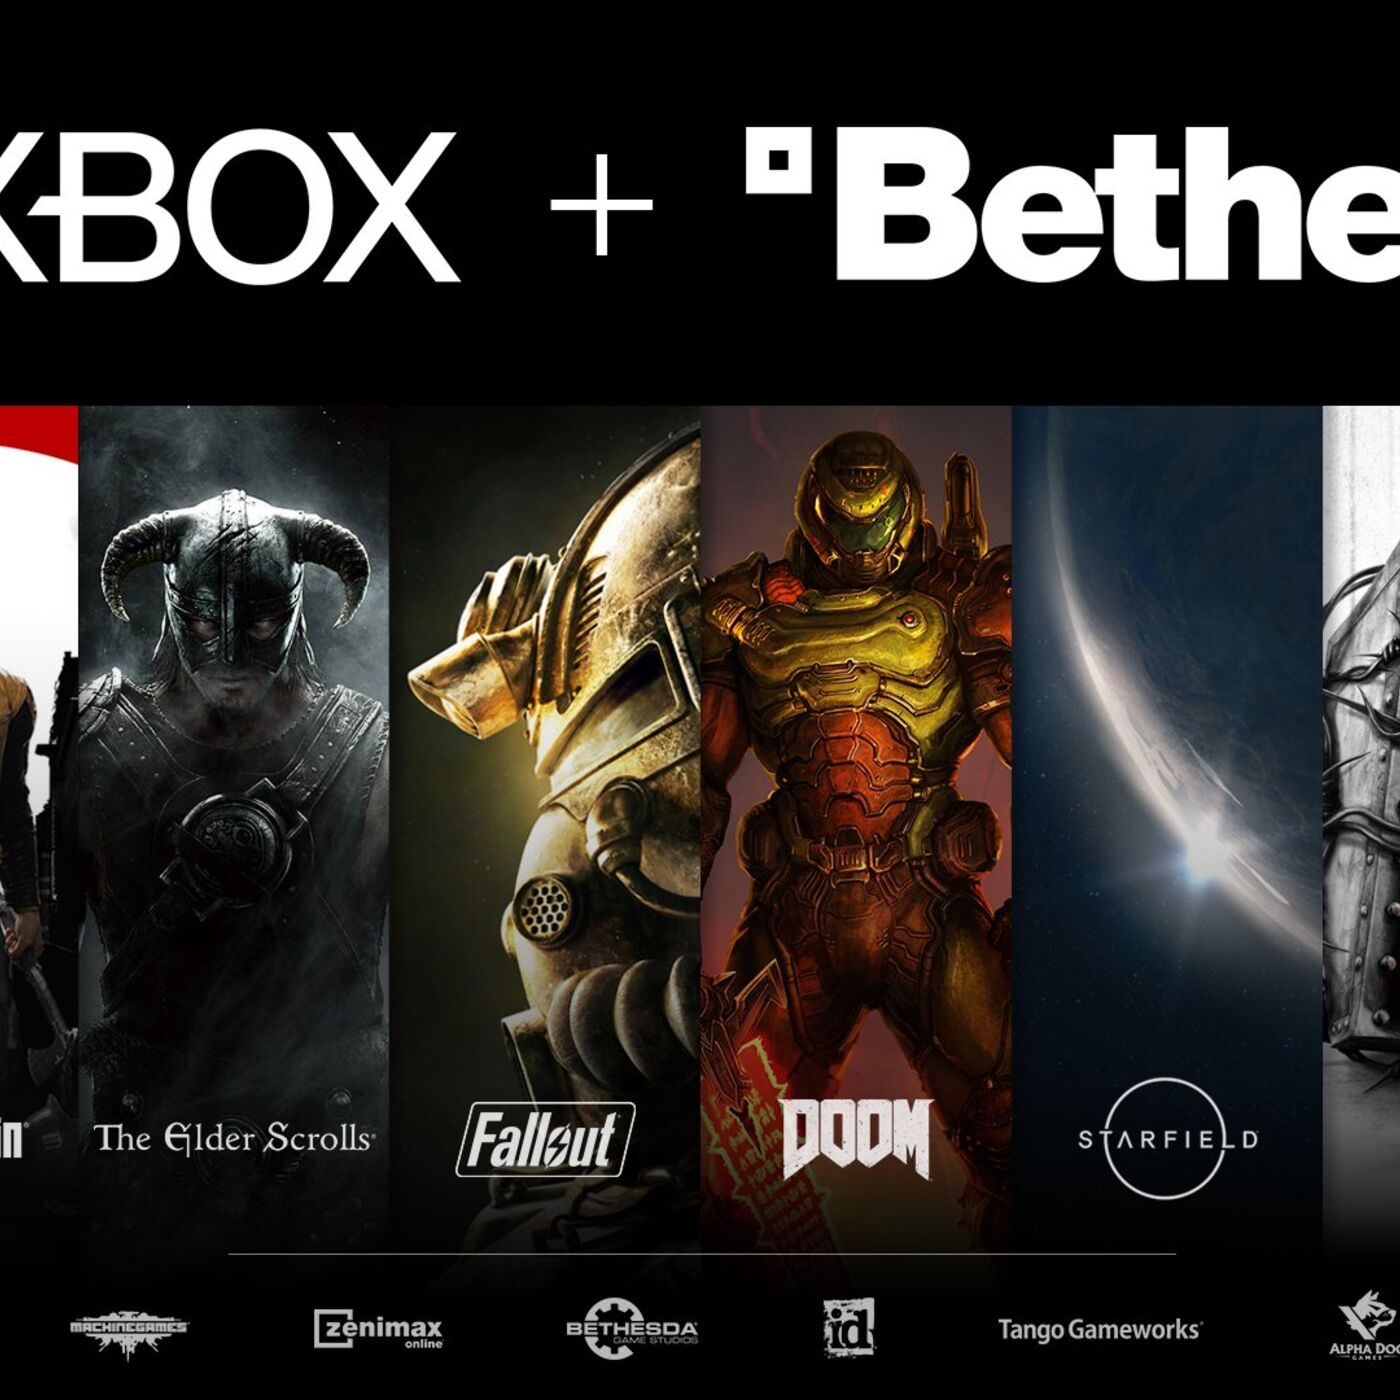 Microsoft has acquired Bethesda's parent company Zenimax